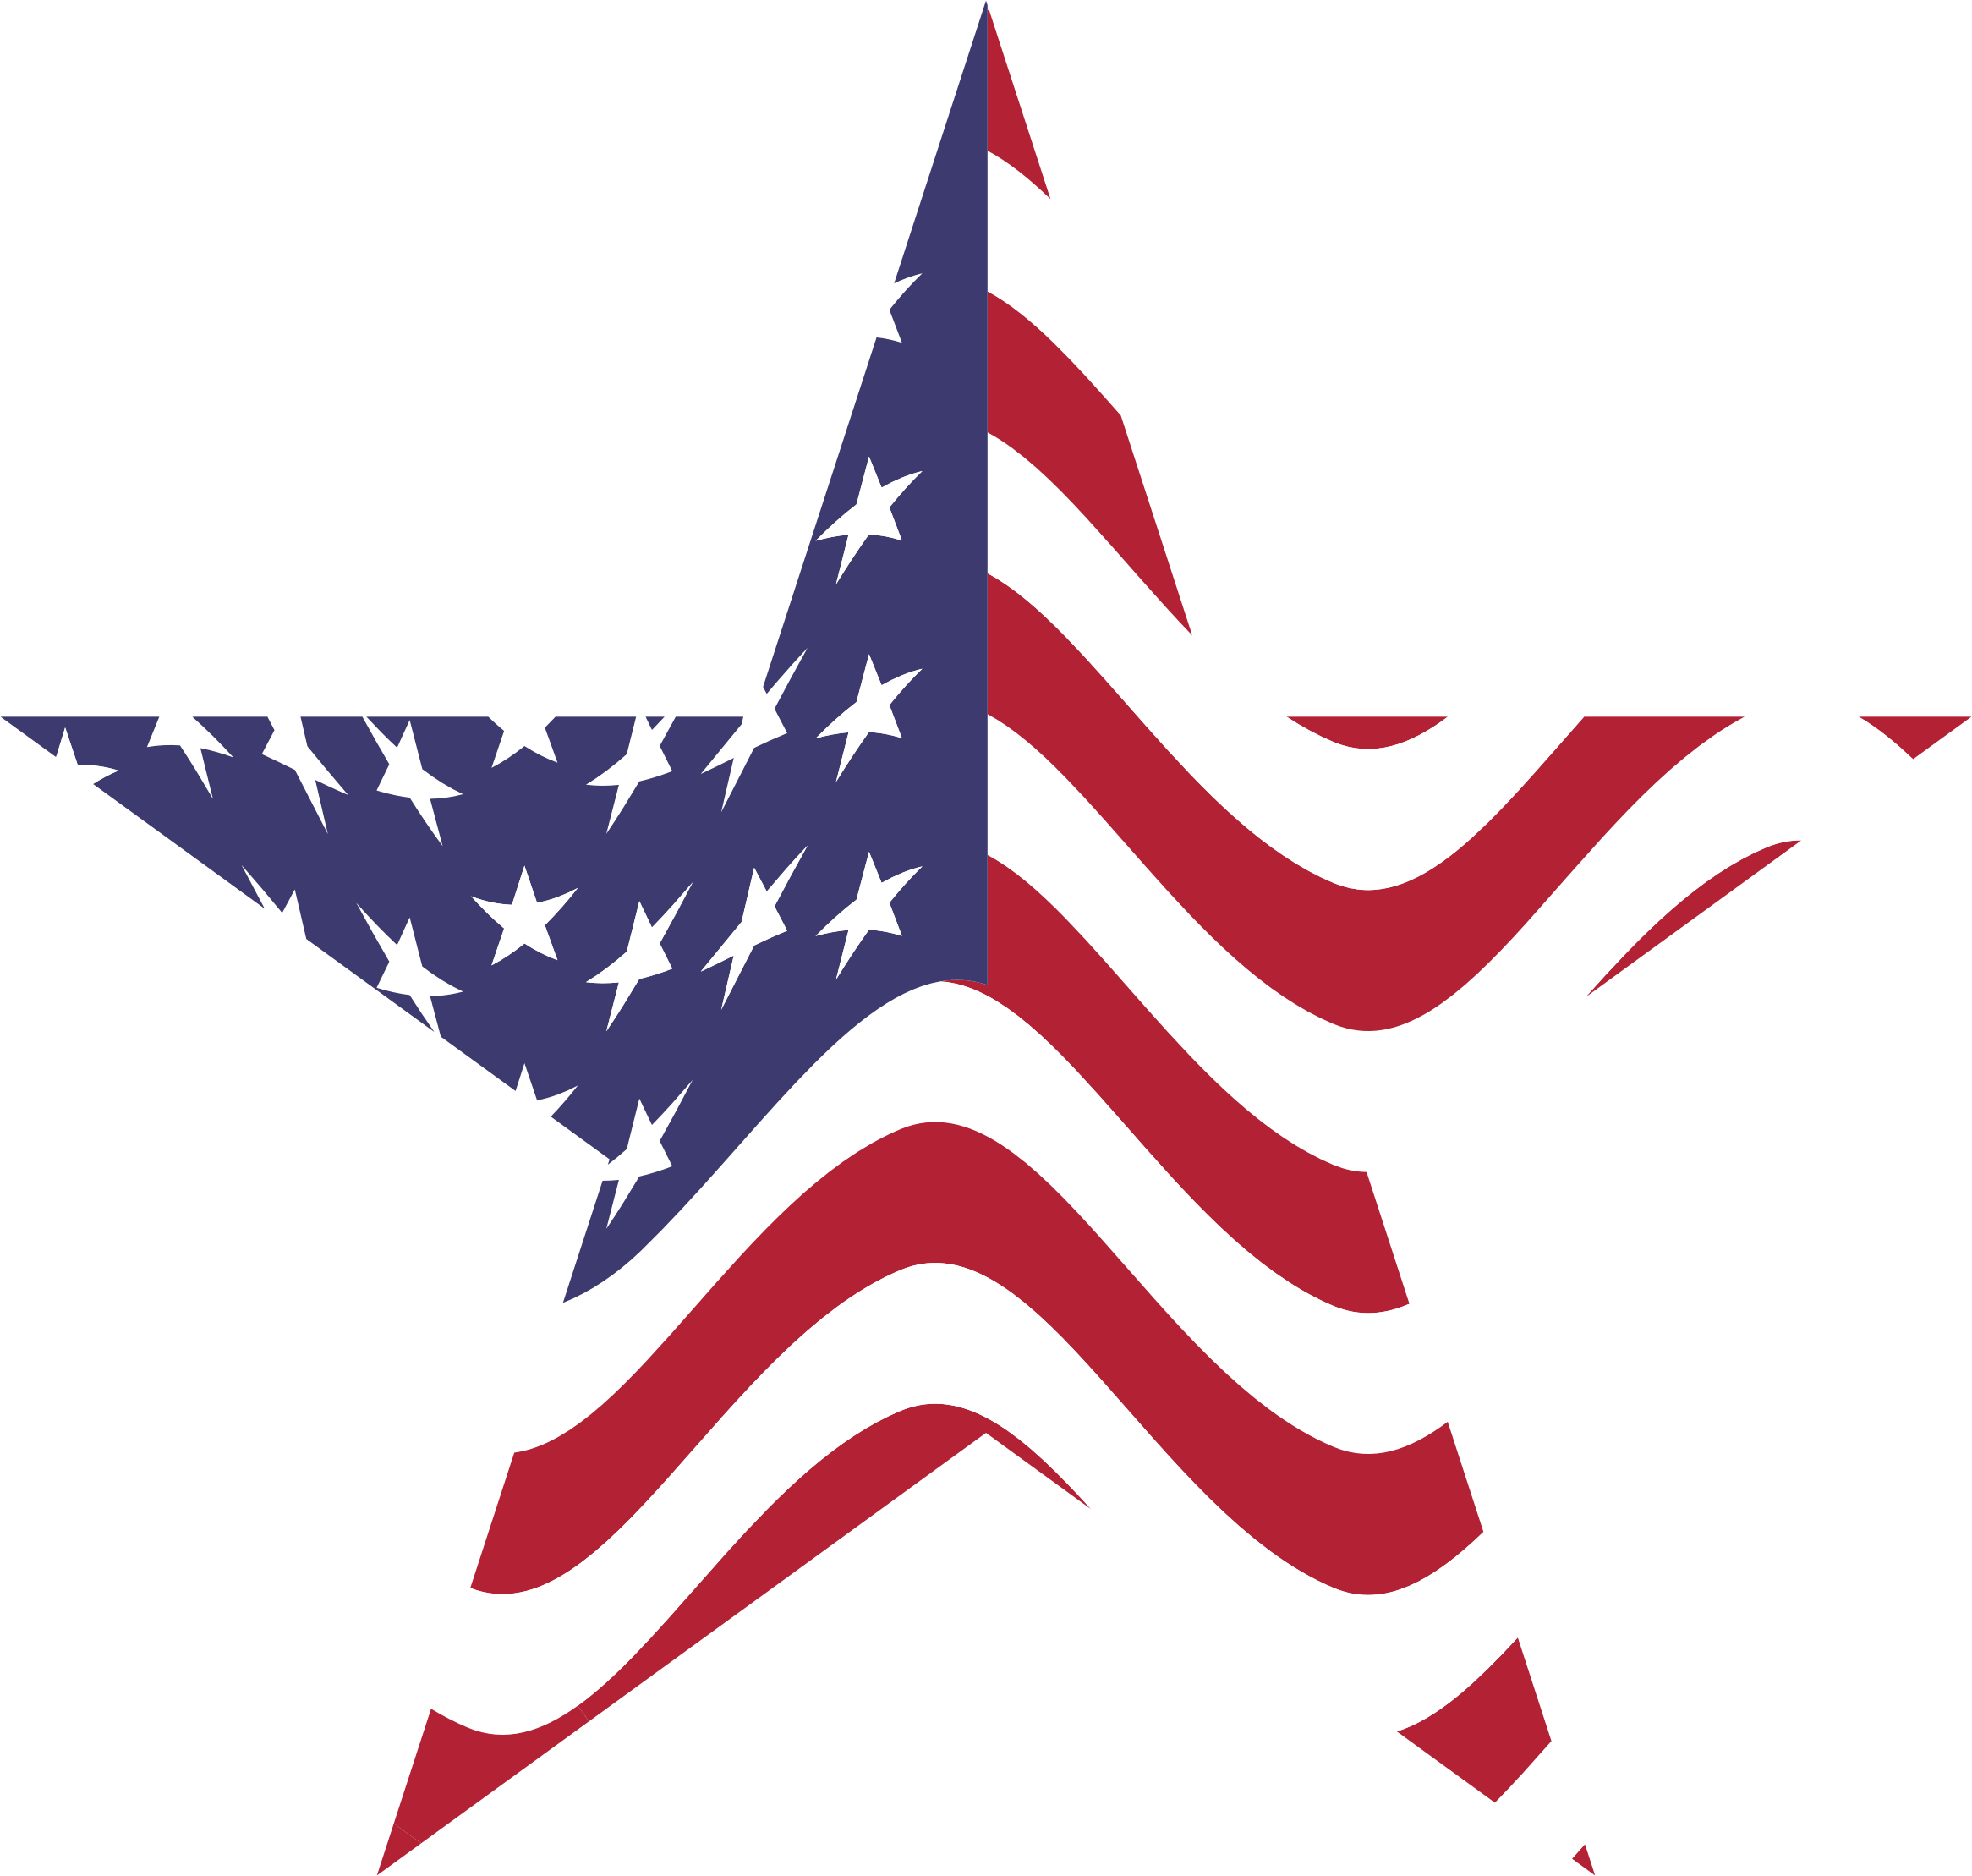 American Flag Star by GDJ